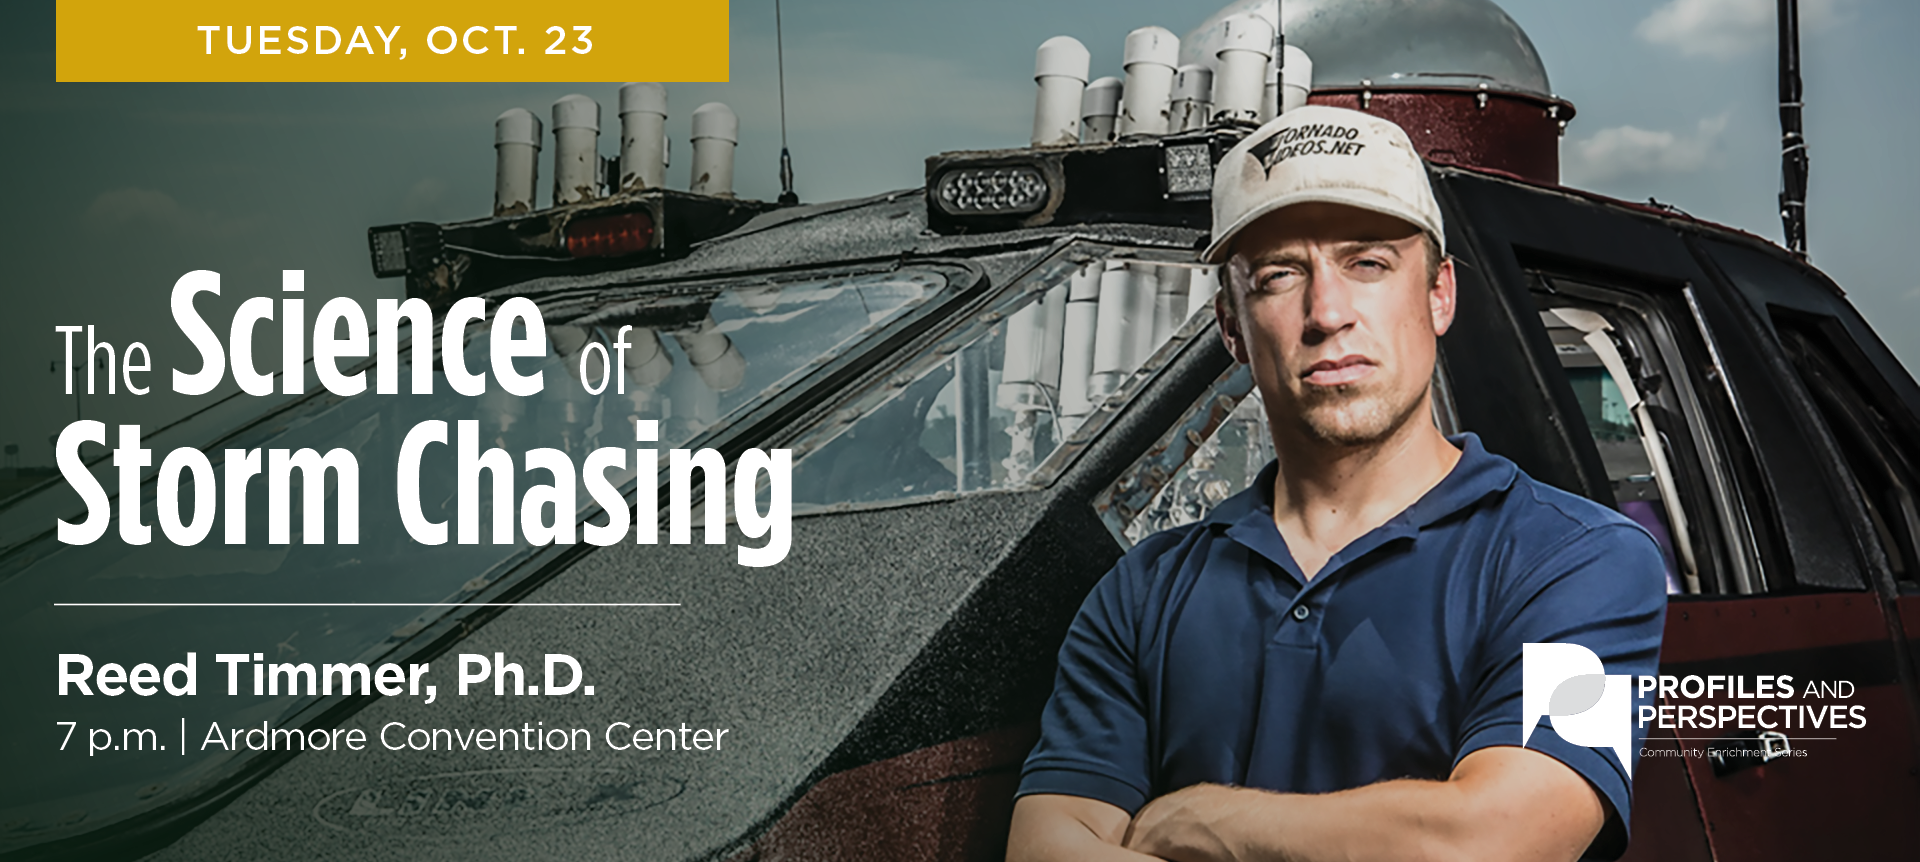 Famed Storm Chaser Set to Conclude 20th Anniversary of Profiles and Perspectives Series